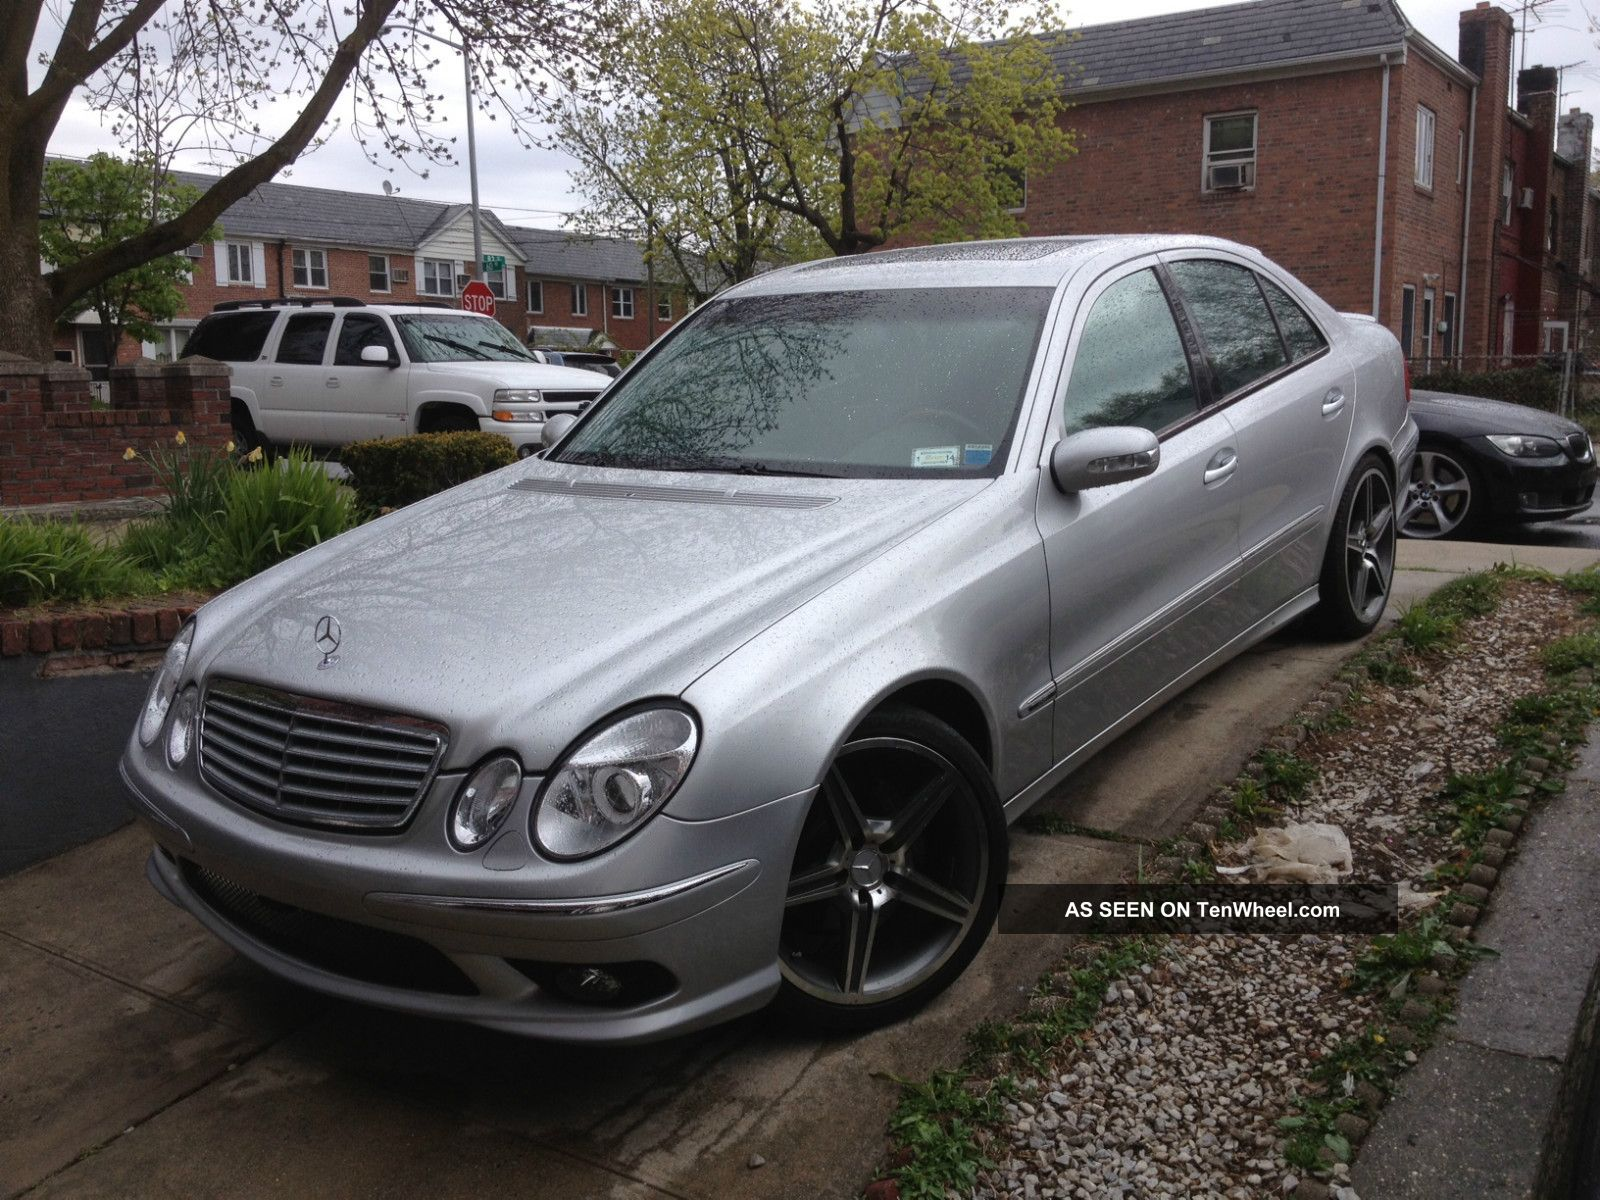 Mercedes e500 amg for sale images for Mercedes benz e500 for sale